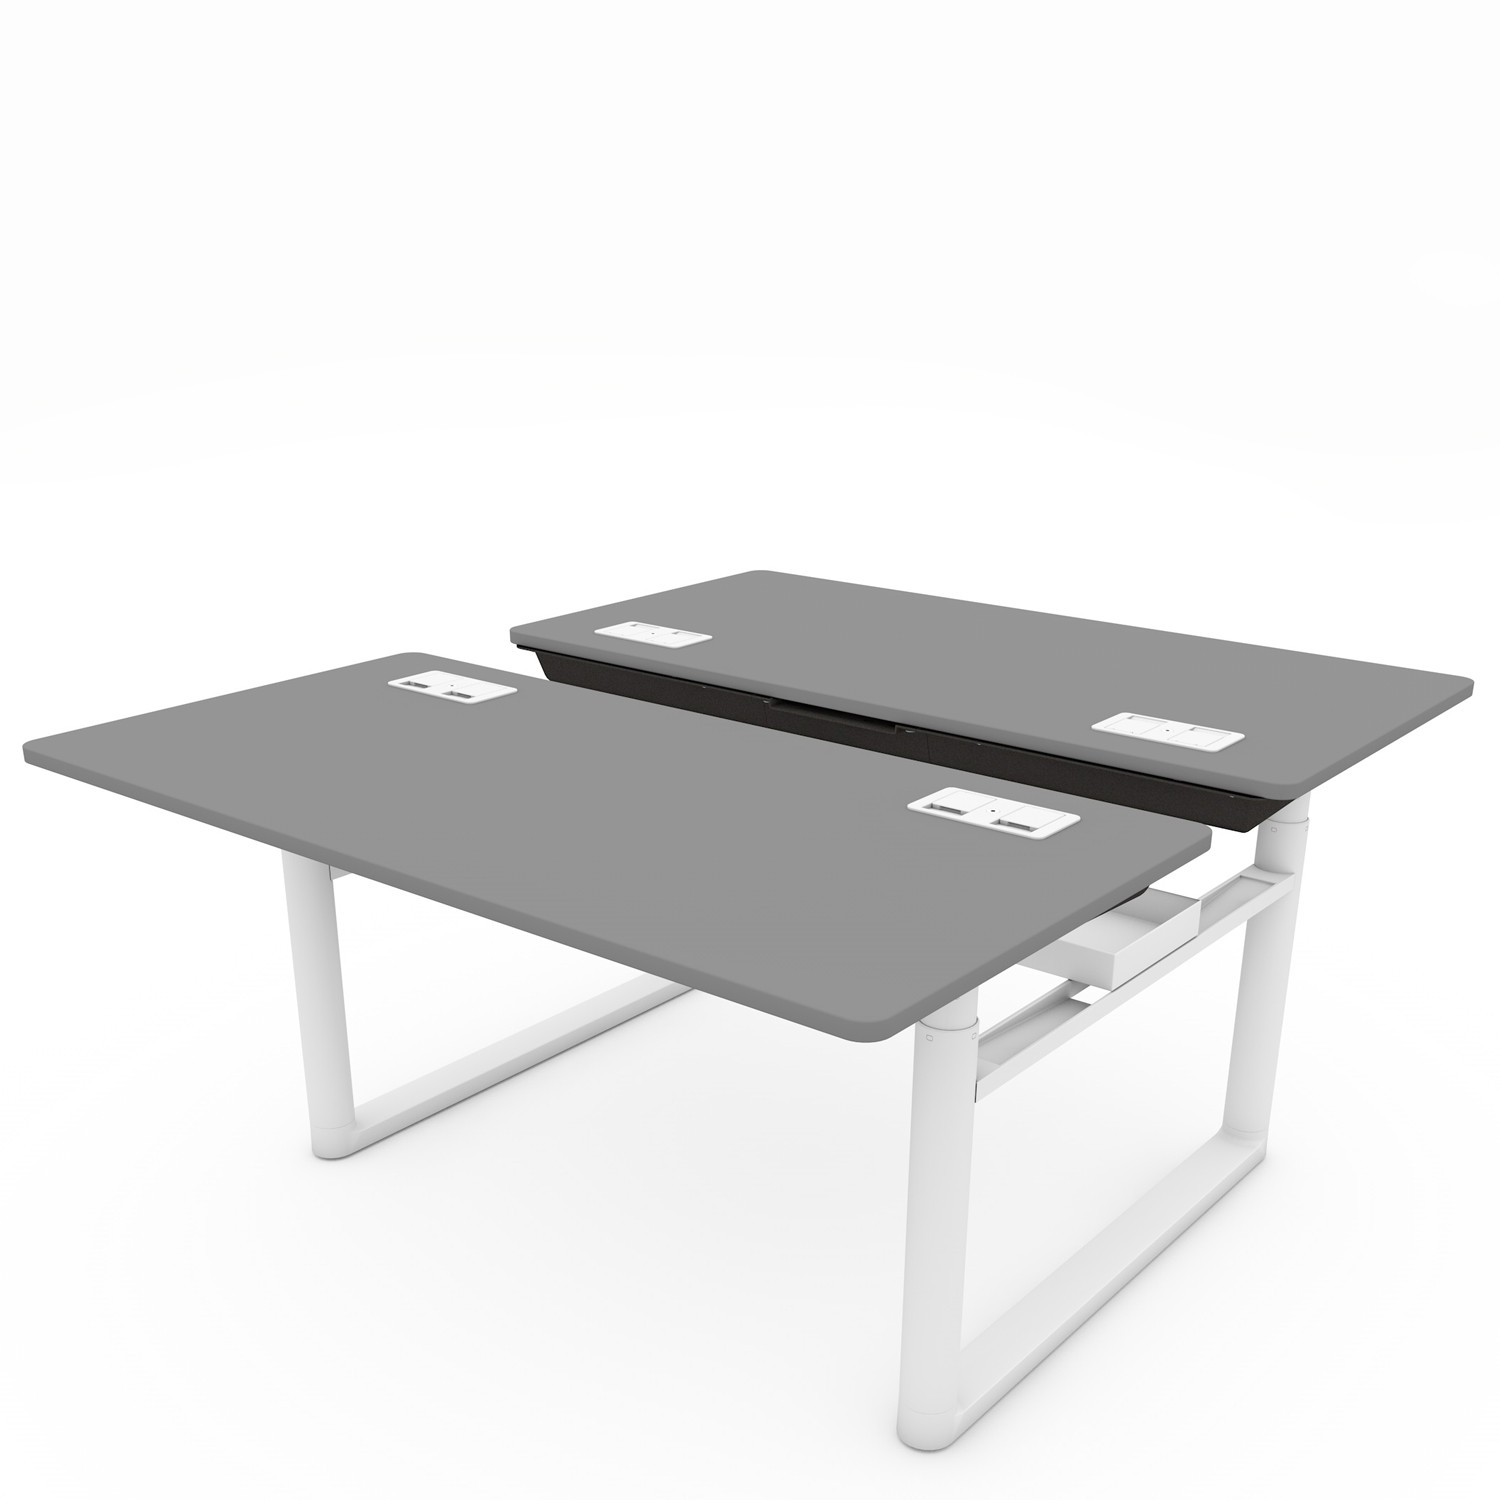 Tyde Sit-Stand Bench Desk   - Tyde Sit-stand office desks · Tyde Sit-stand double office workstations ...